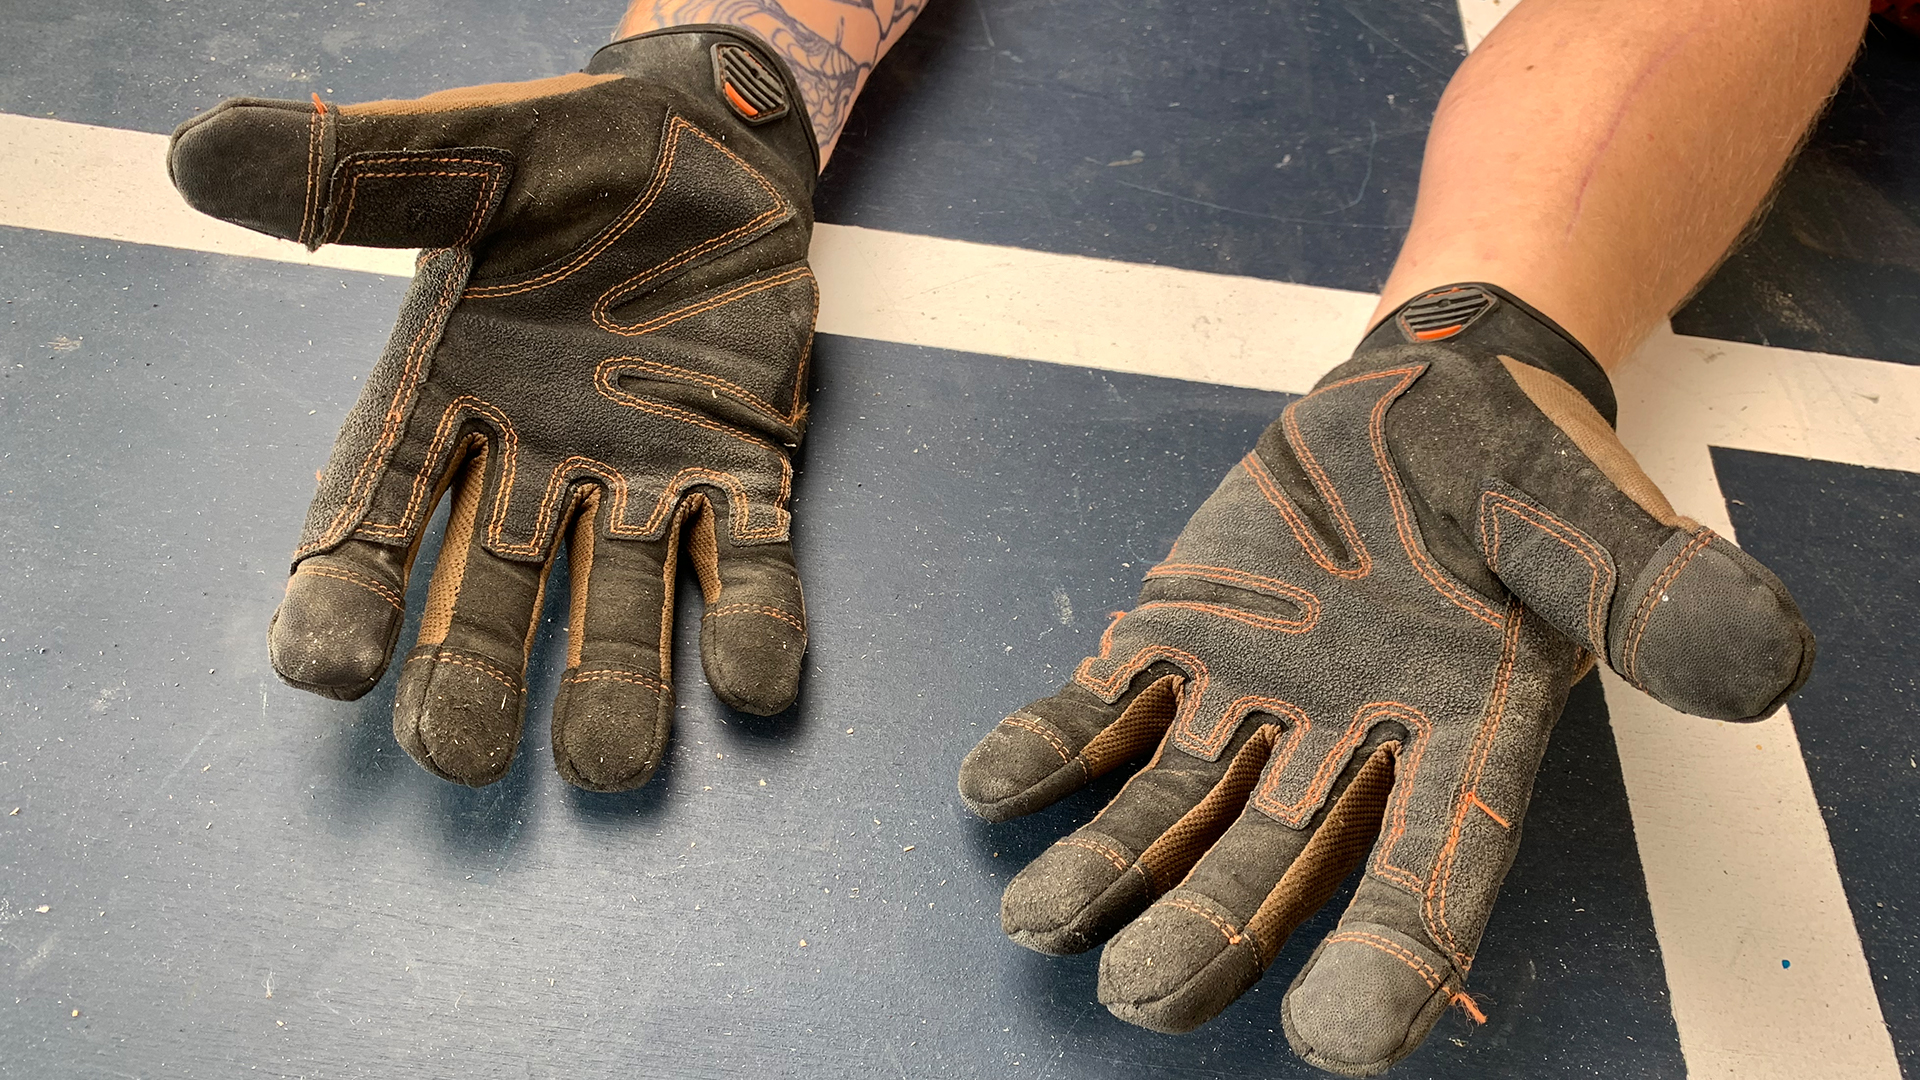 firm-grip-trademaster-heavy-duty-gloves-electrician